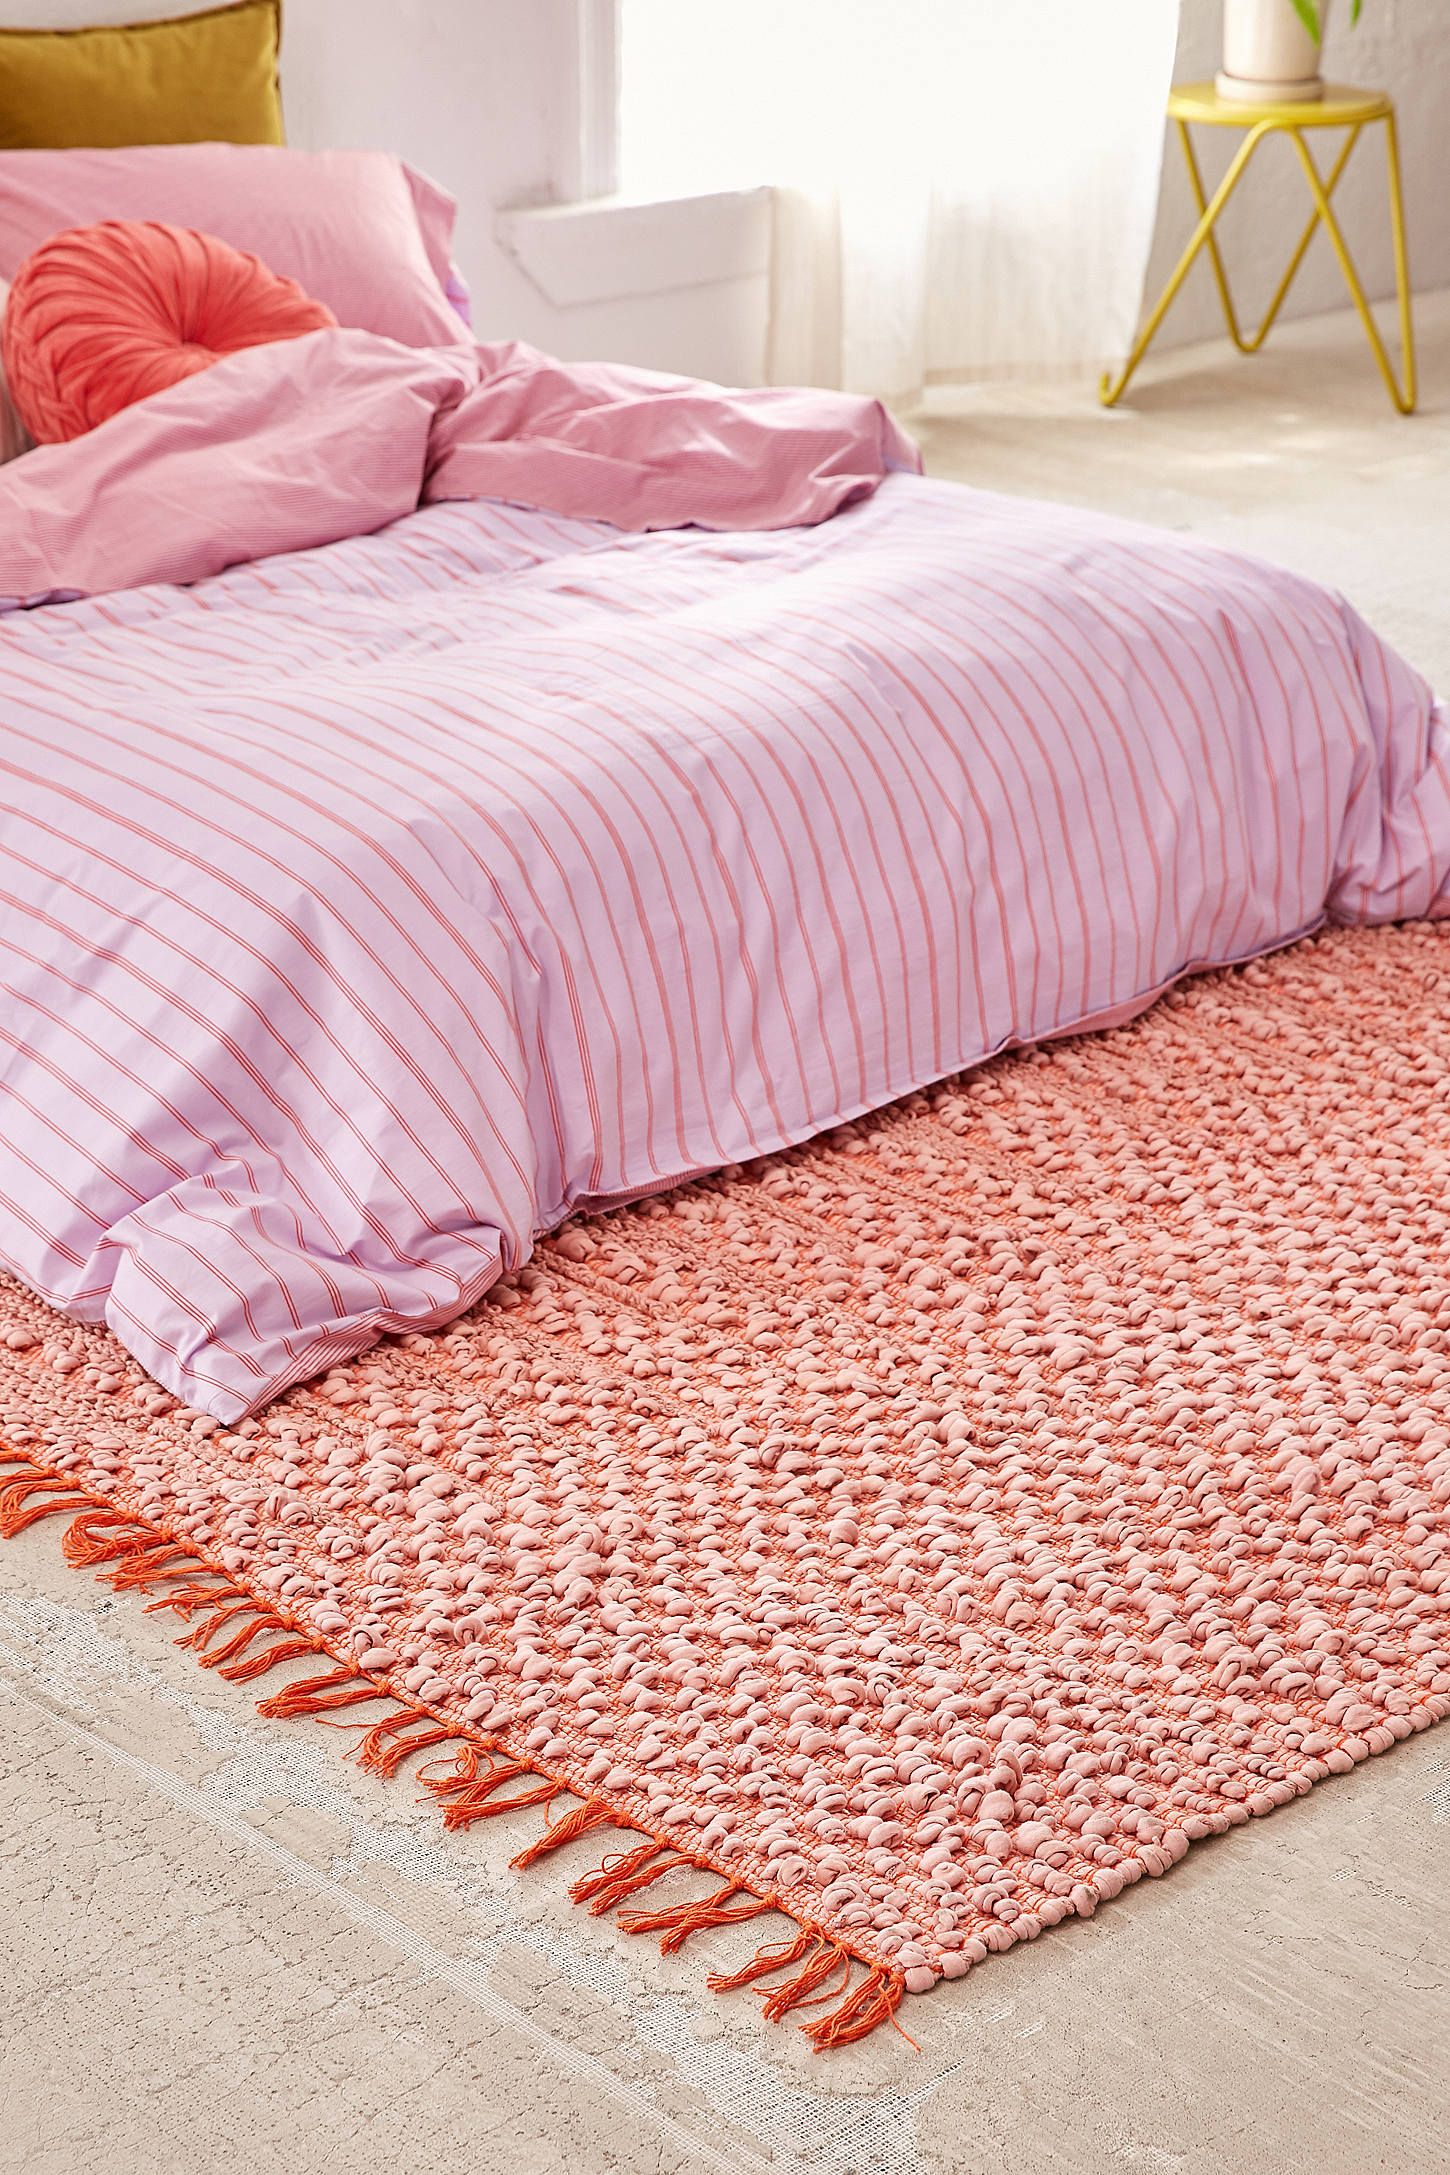 Pala Textured Loop Rug | Latest styles, Bedrooms and House